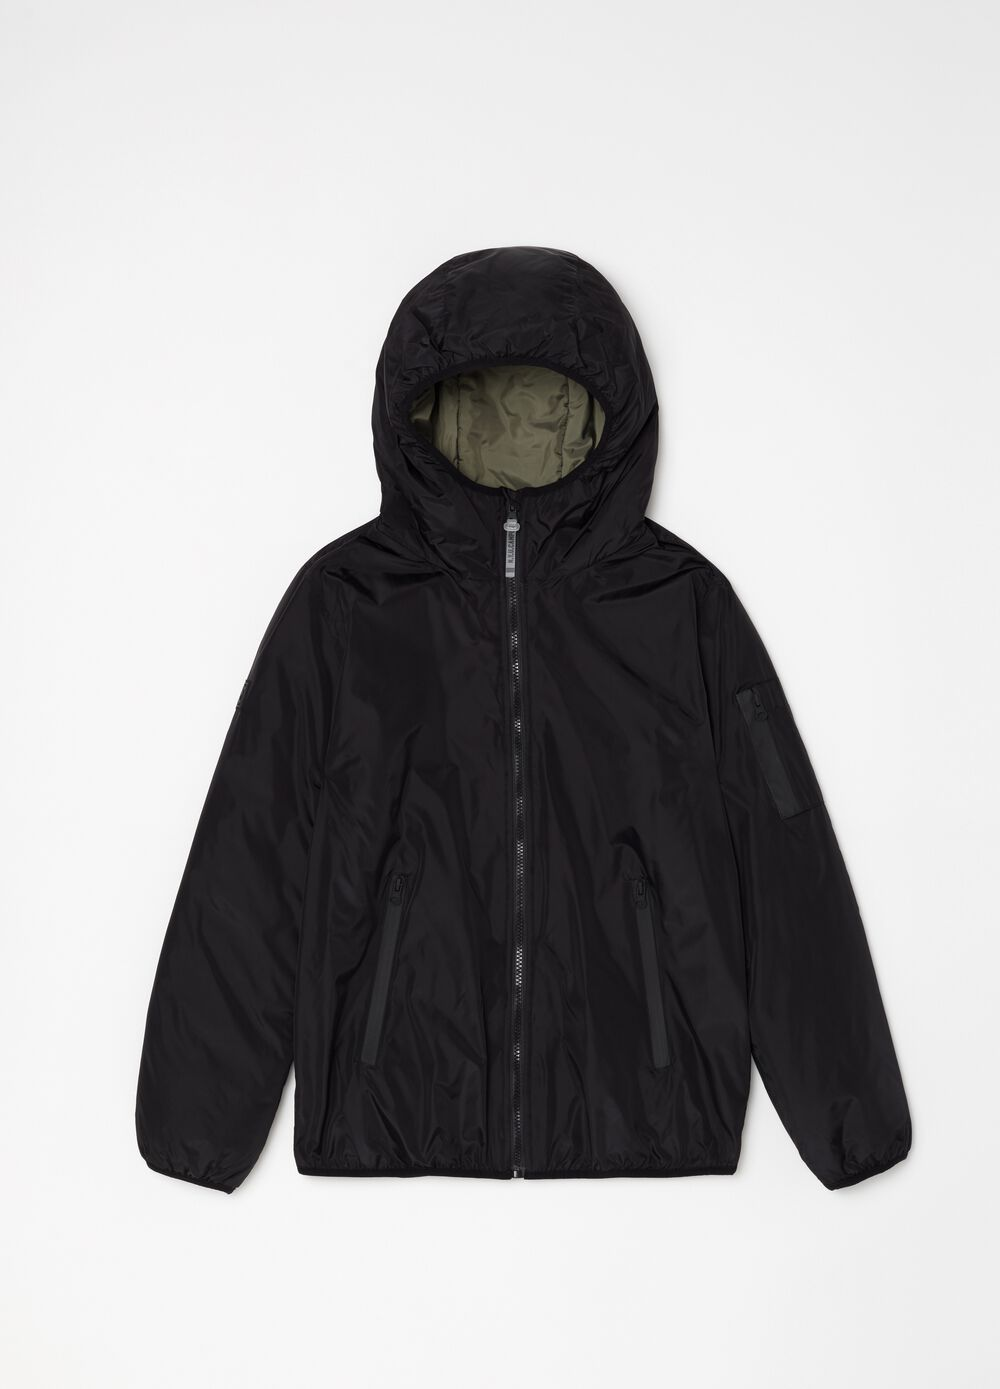 Hooded windbreaker with zip